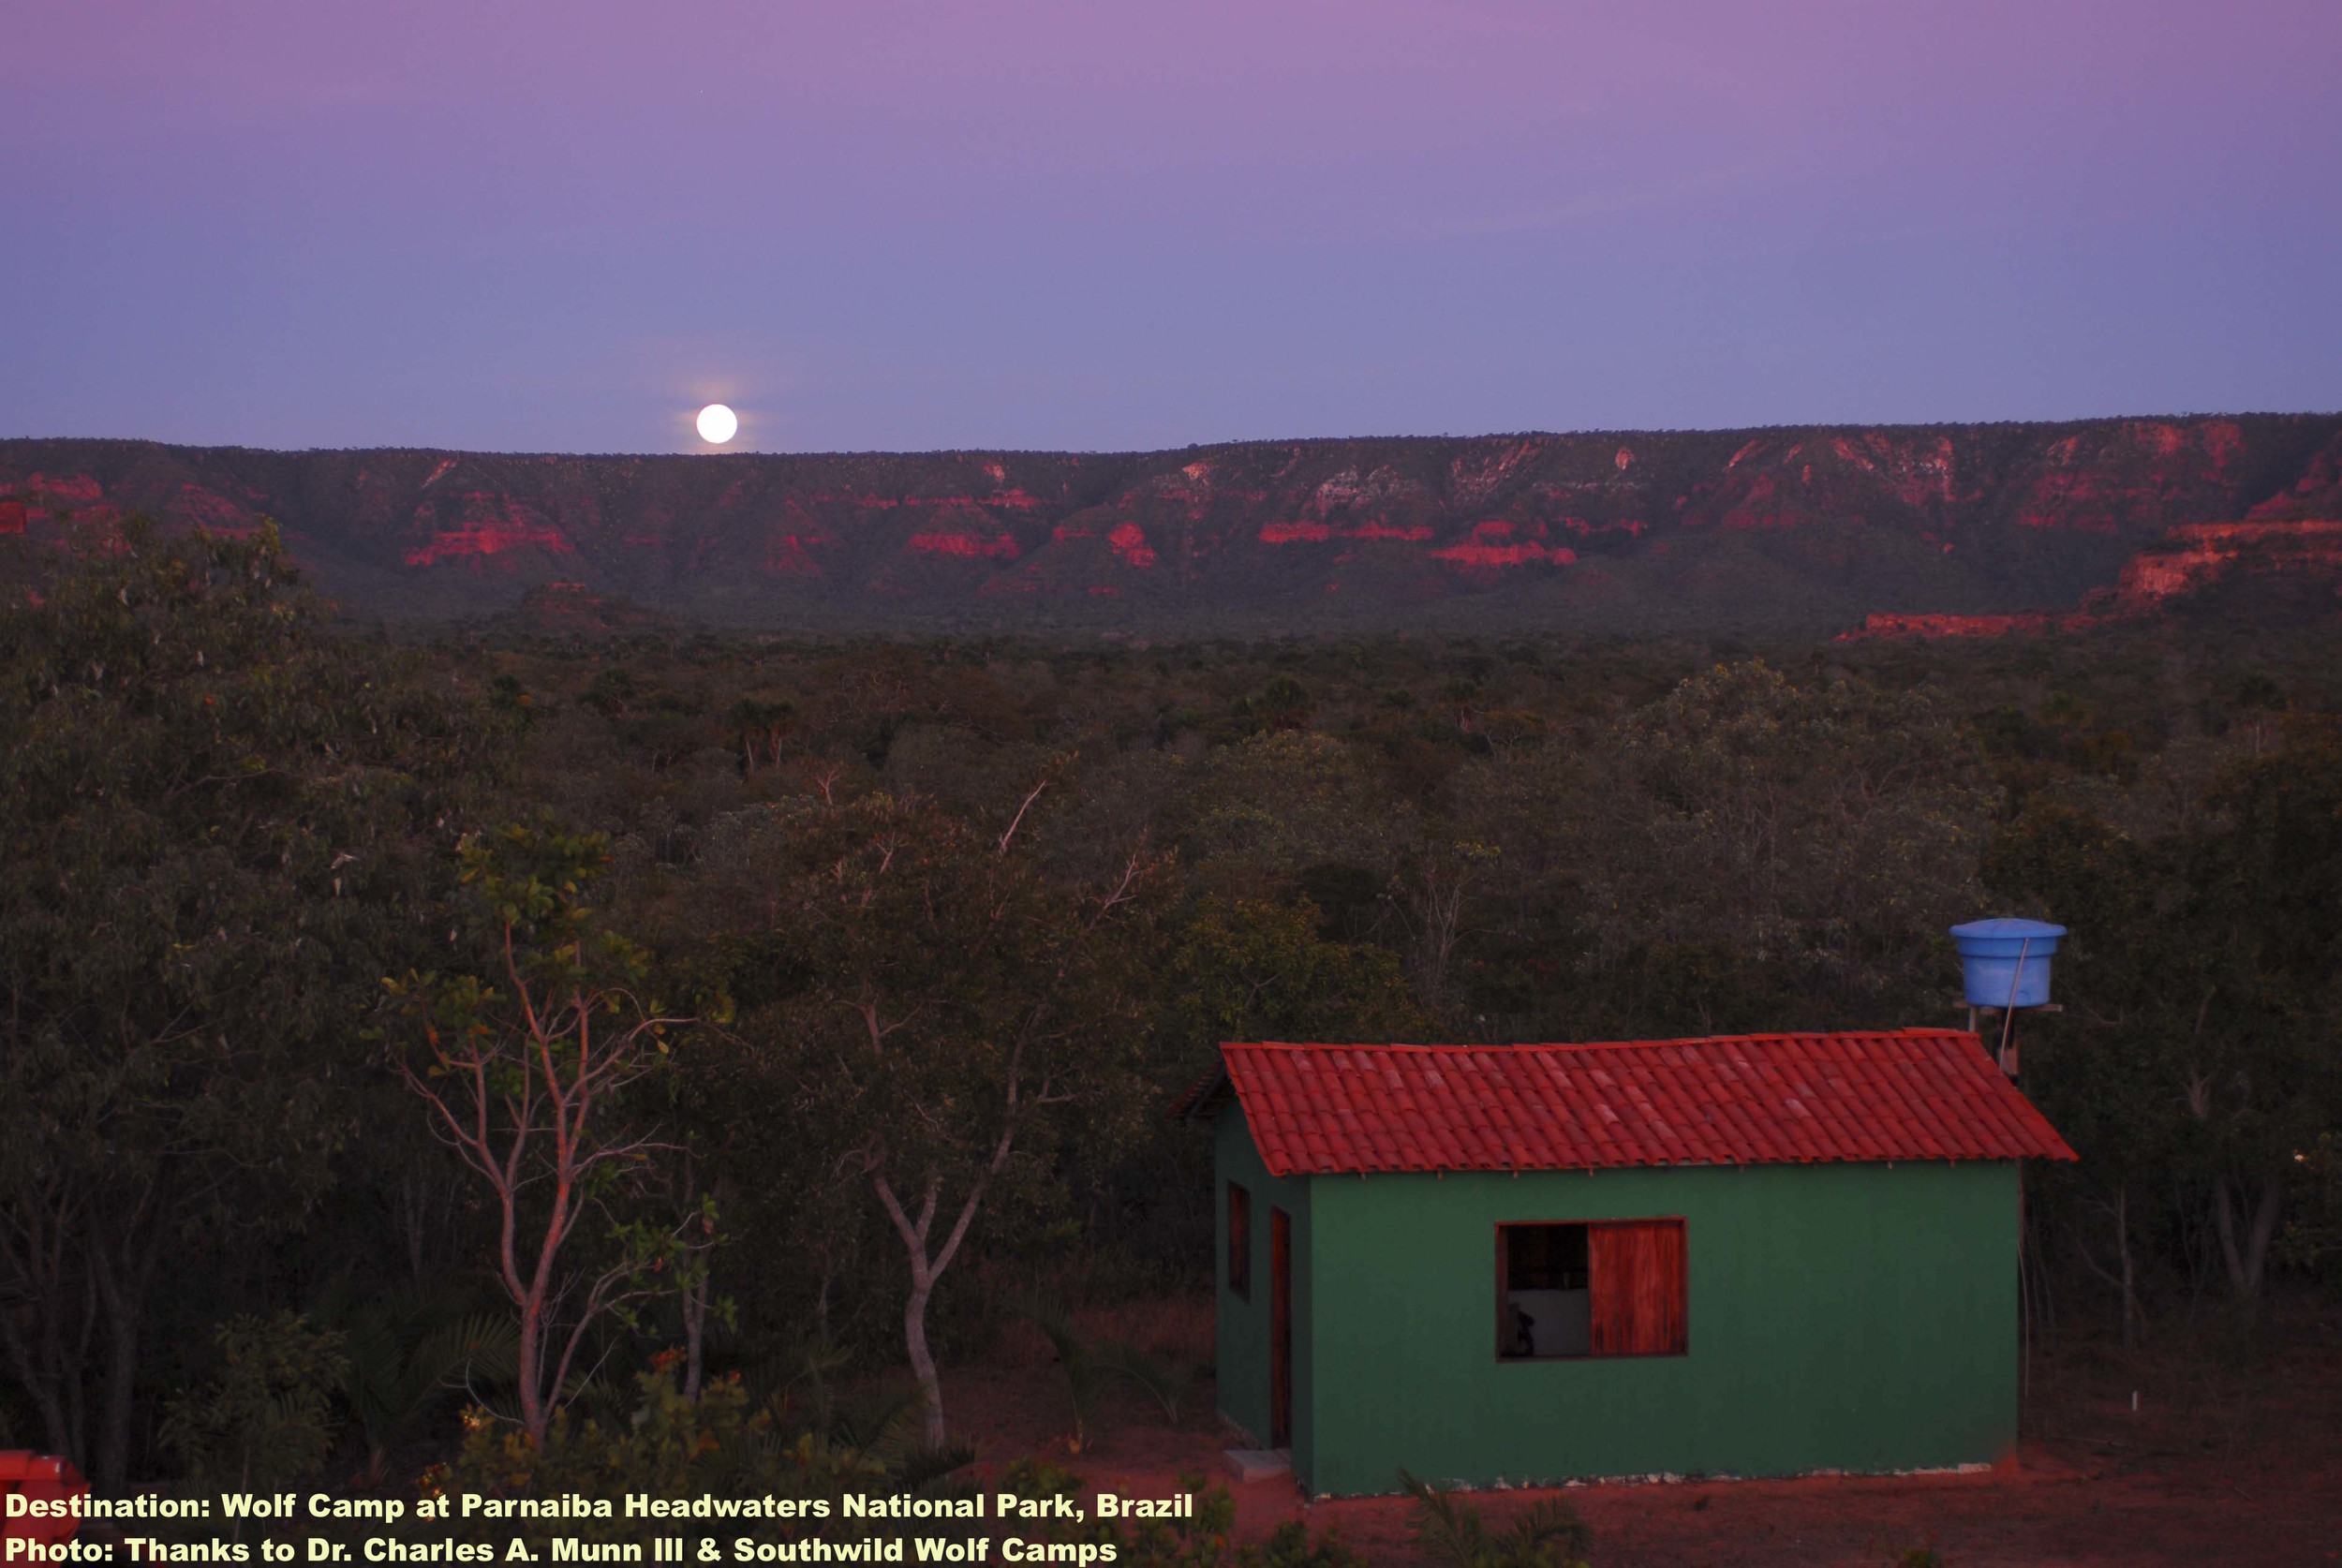 THE MOON DUCKS BEHIND THE MOUNTAIN AT THE DAWN OF ANOTHER DAY. RESPONSIBLE TOURISM CAN HELP ENSURE THAT ON THIS DAY THE HUMAN IMPACT ON THE CERRADO IS SUSTAINABLE. THE VIEW FROM WOLF CLIFFS CAMP, PARNAIBA HEADWATERS NATIONAL PARK, BRAZIL. PHOTO: DR CHARLES A. MUNN AND SOUTHWILD WOLF CAMPS.